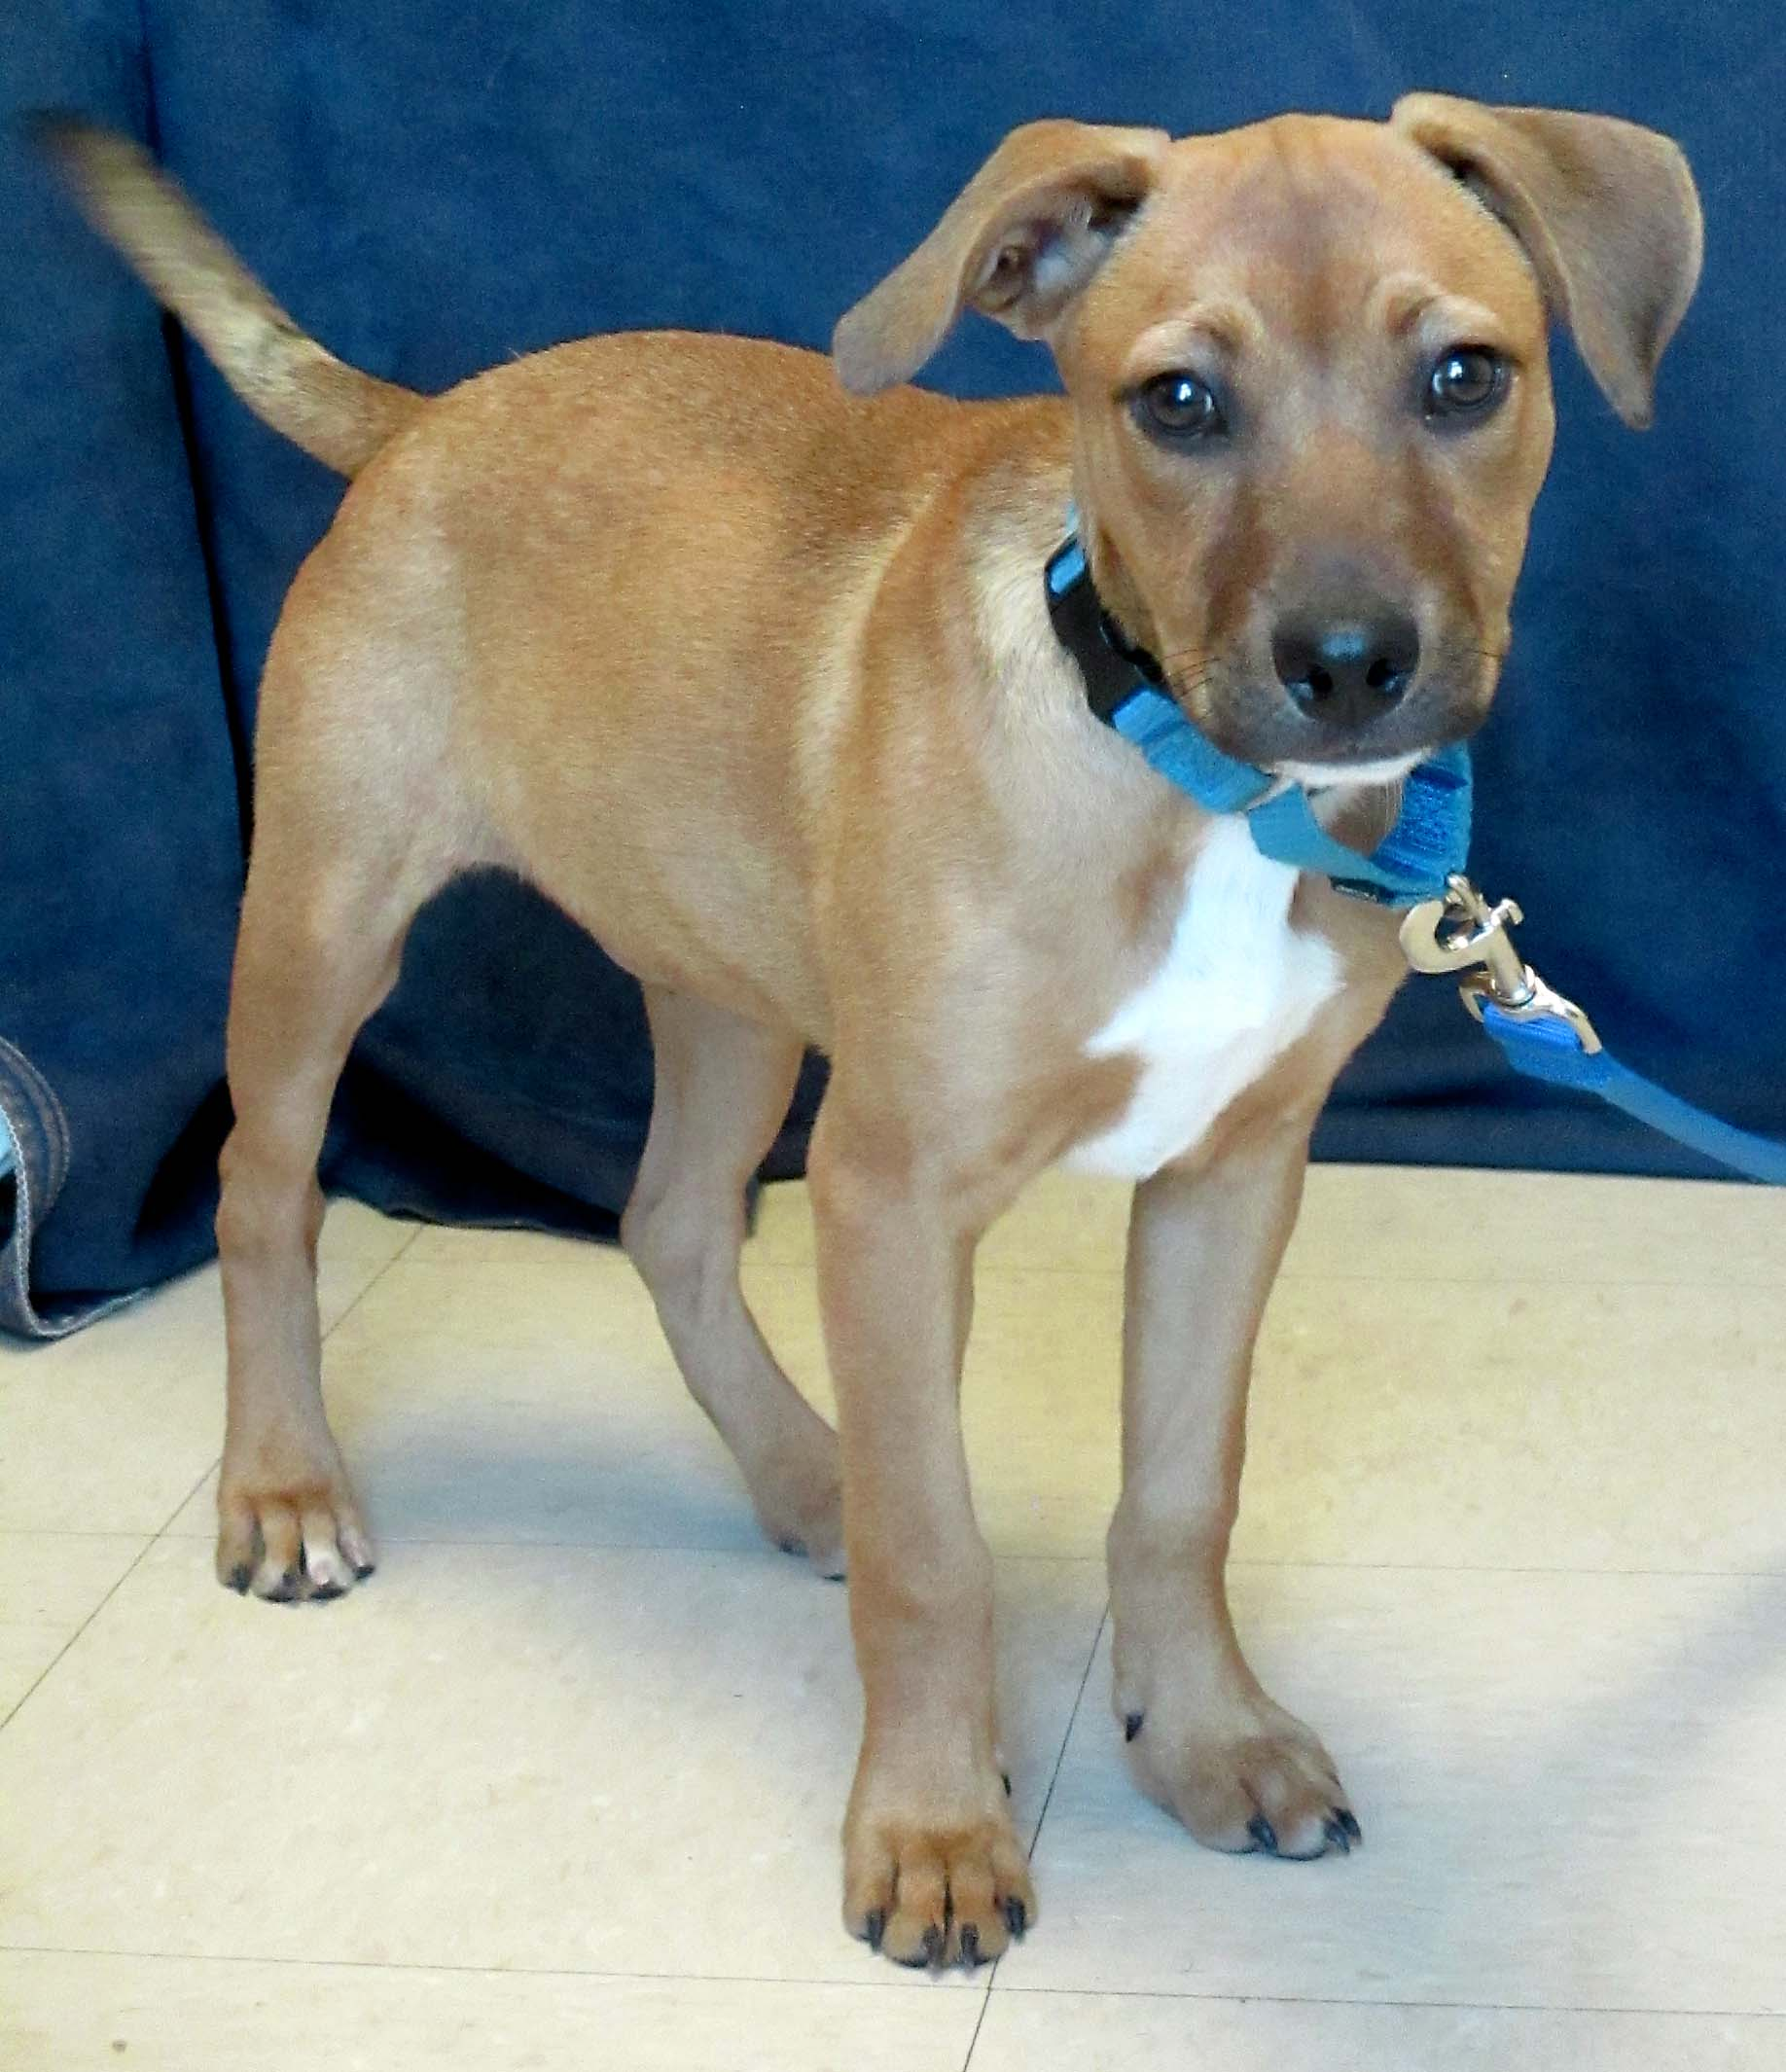 Gretel is a 6-month-old puppy that is full of energy and spunk!She does well with people and other dogs. She is already learning to fetch with soft toys.